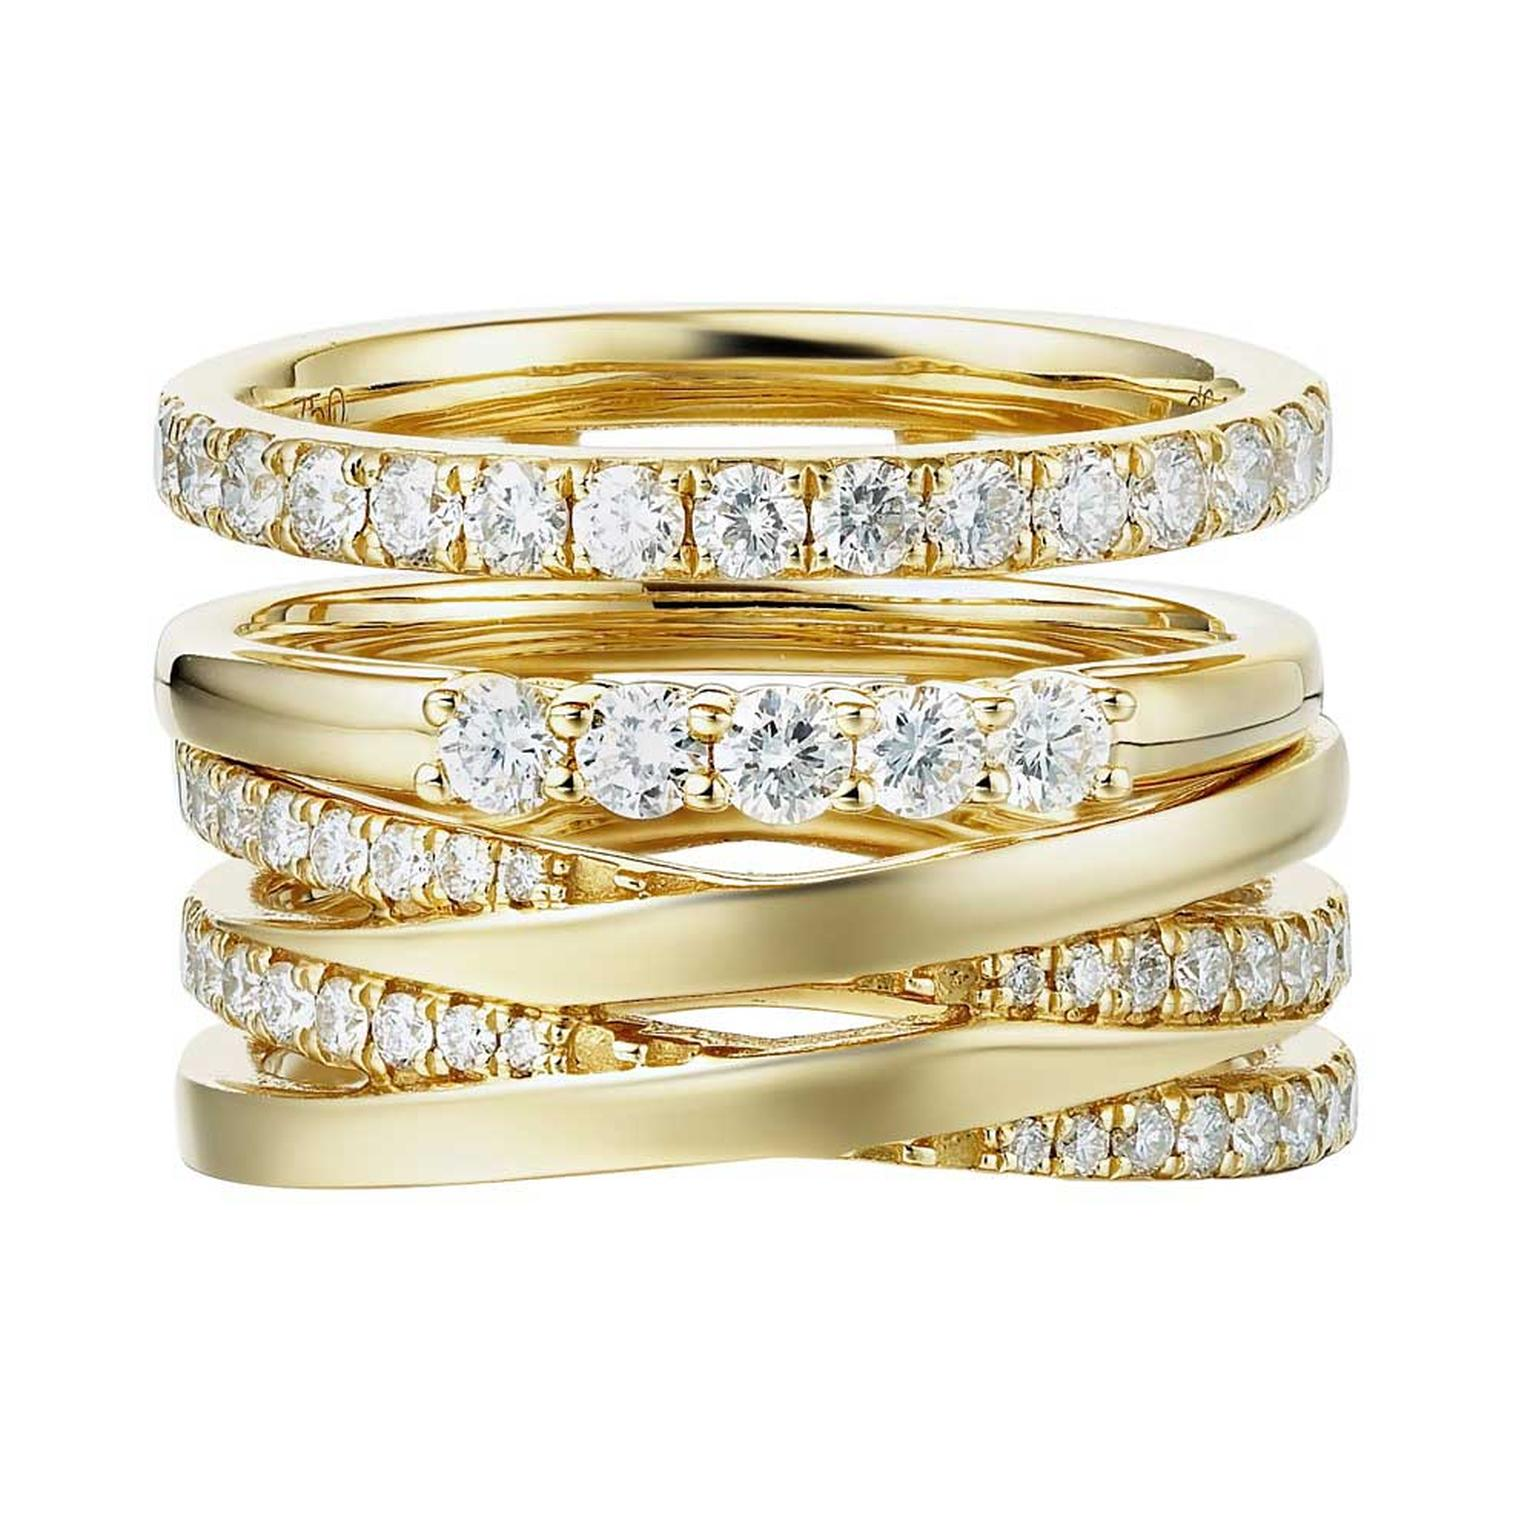 Sarah Zhuang yellow gold and diamond ring